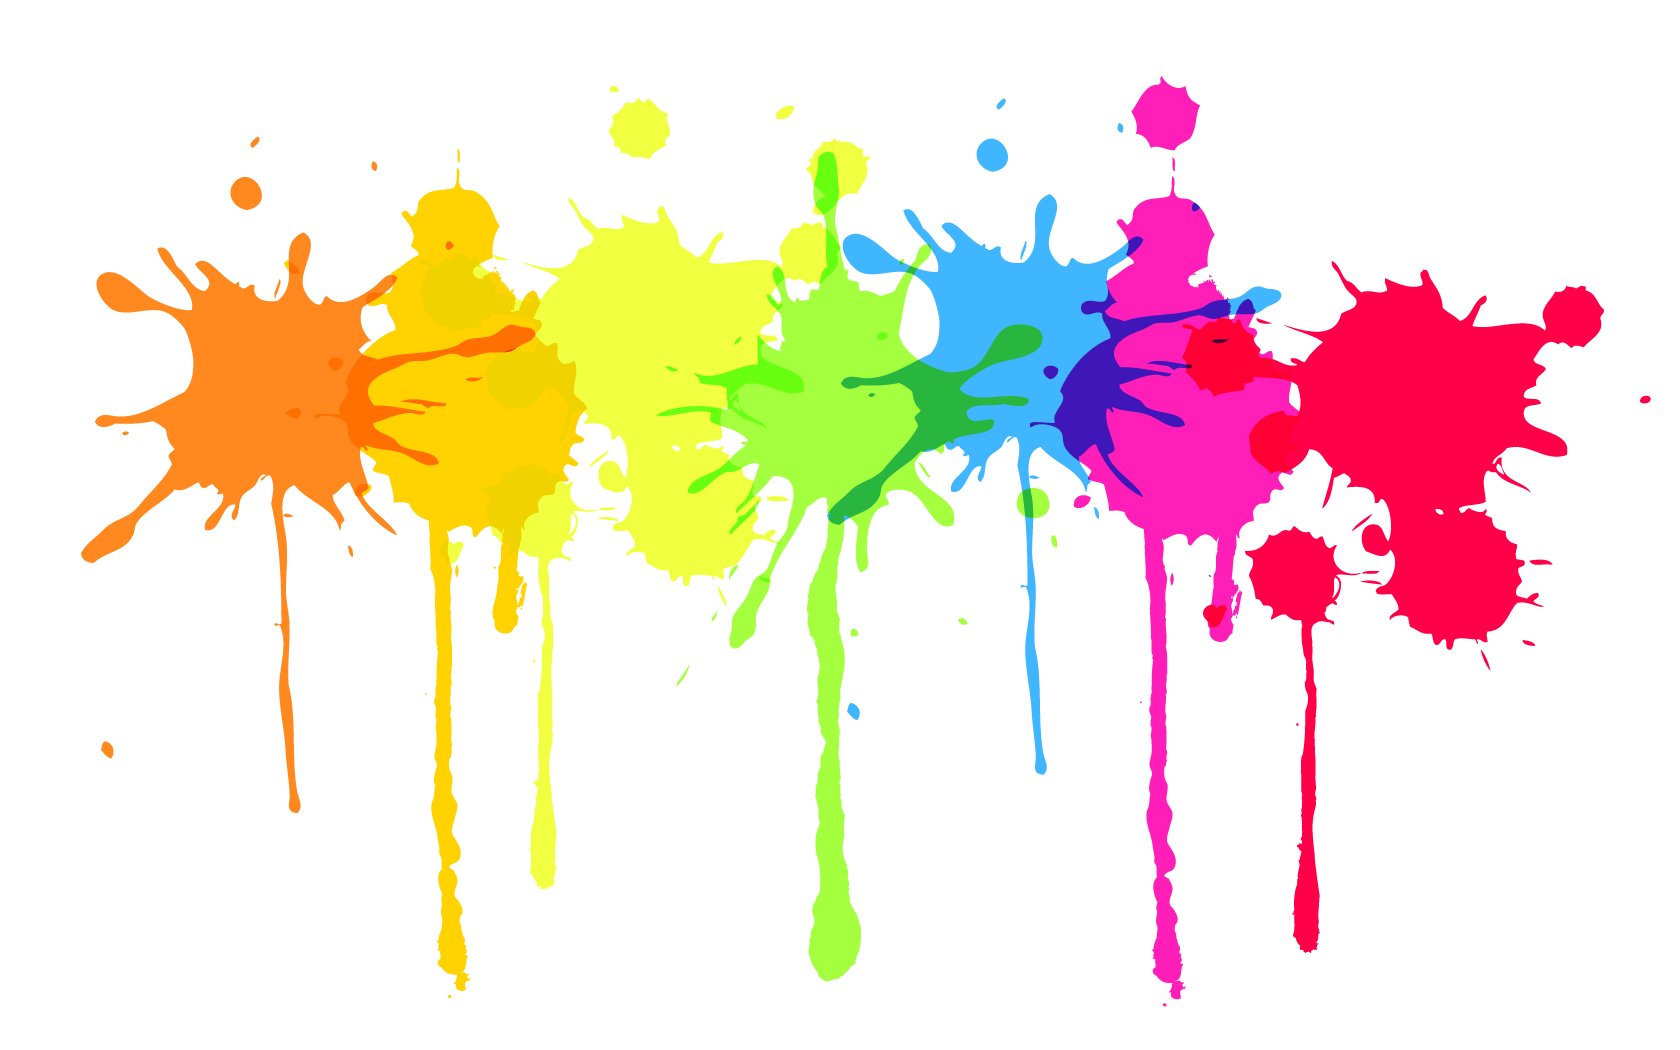 ... Paint Splatter Wallpaper; Paint Splatter Wallpaper